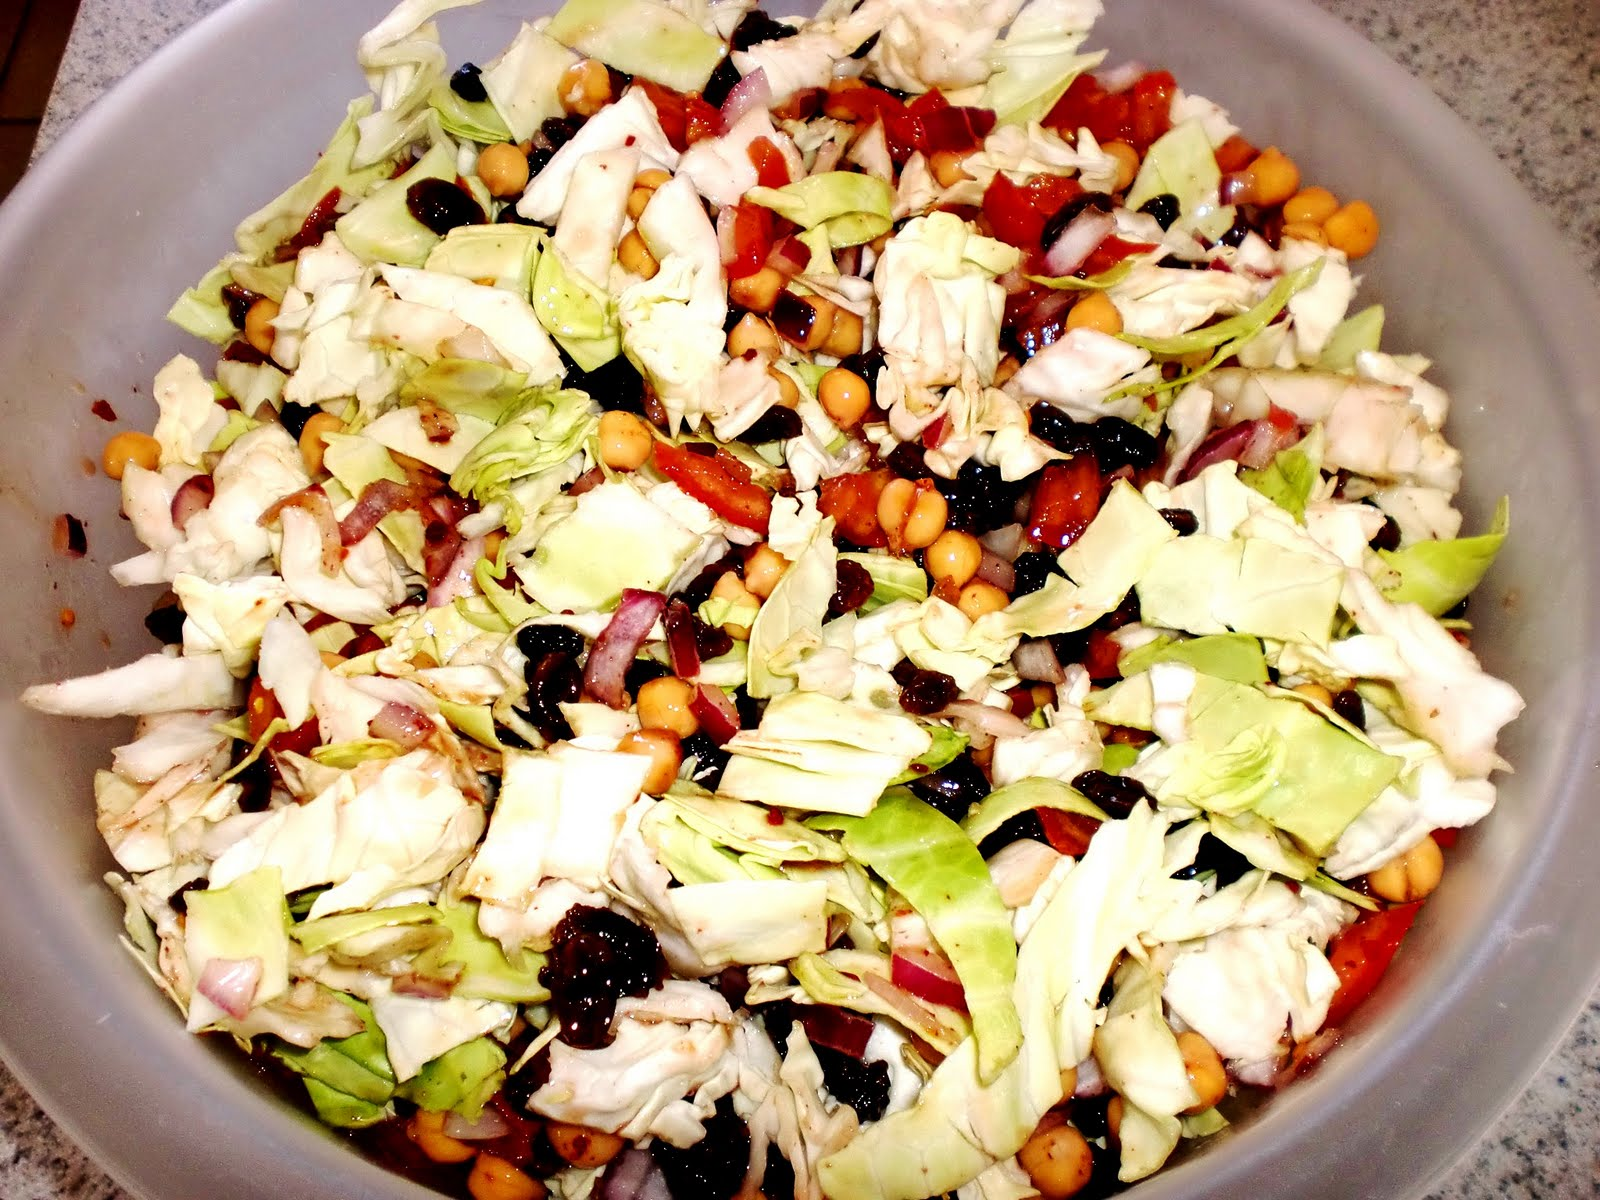 Da begni my e book of recipes egyptian salad just mix all the ingredients and toss with the dressing serve it fresh forumfinder Gallery